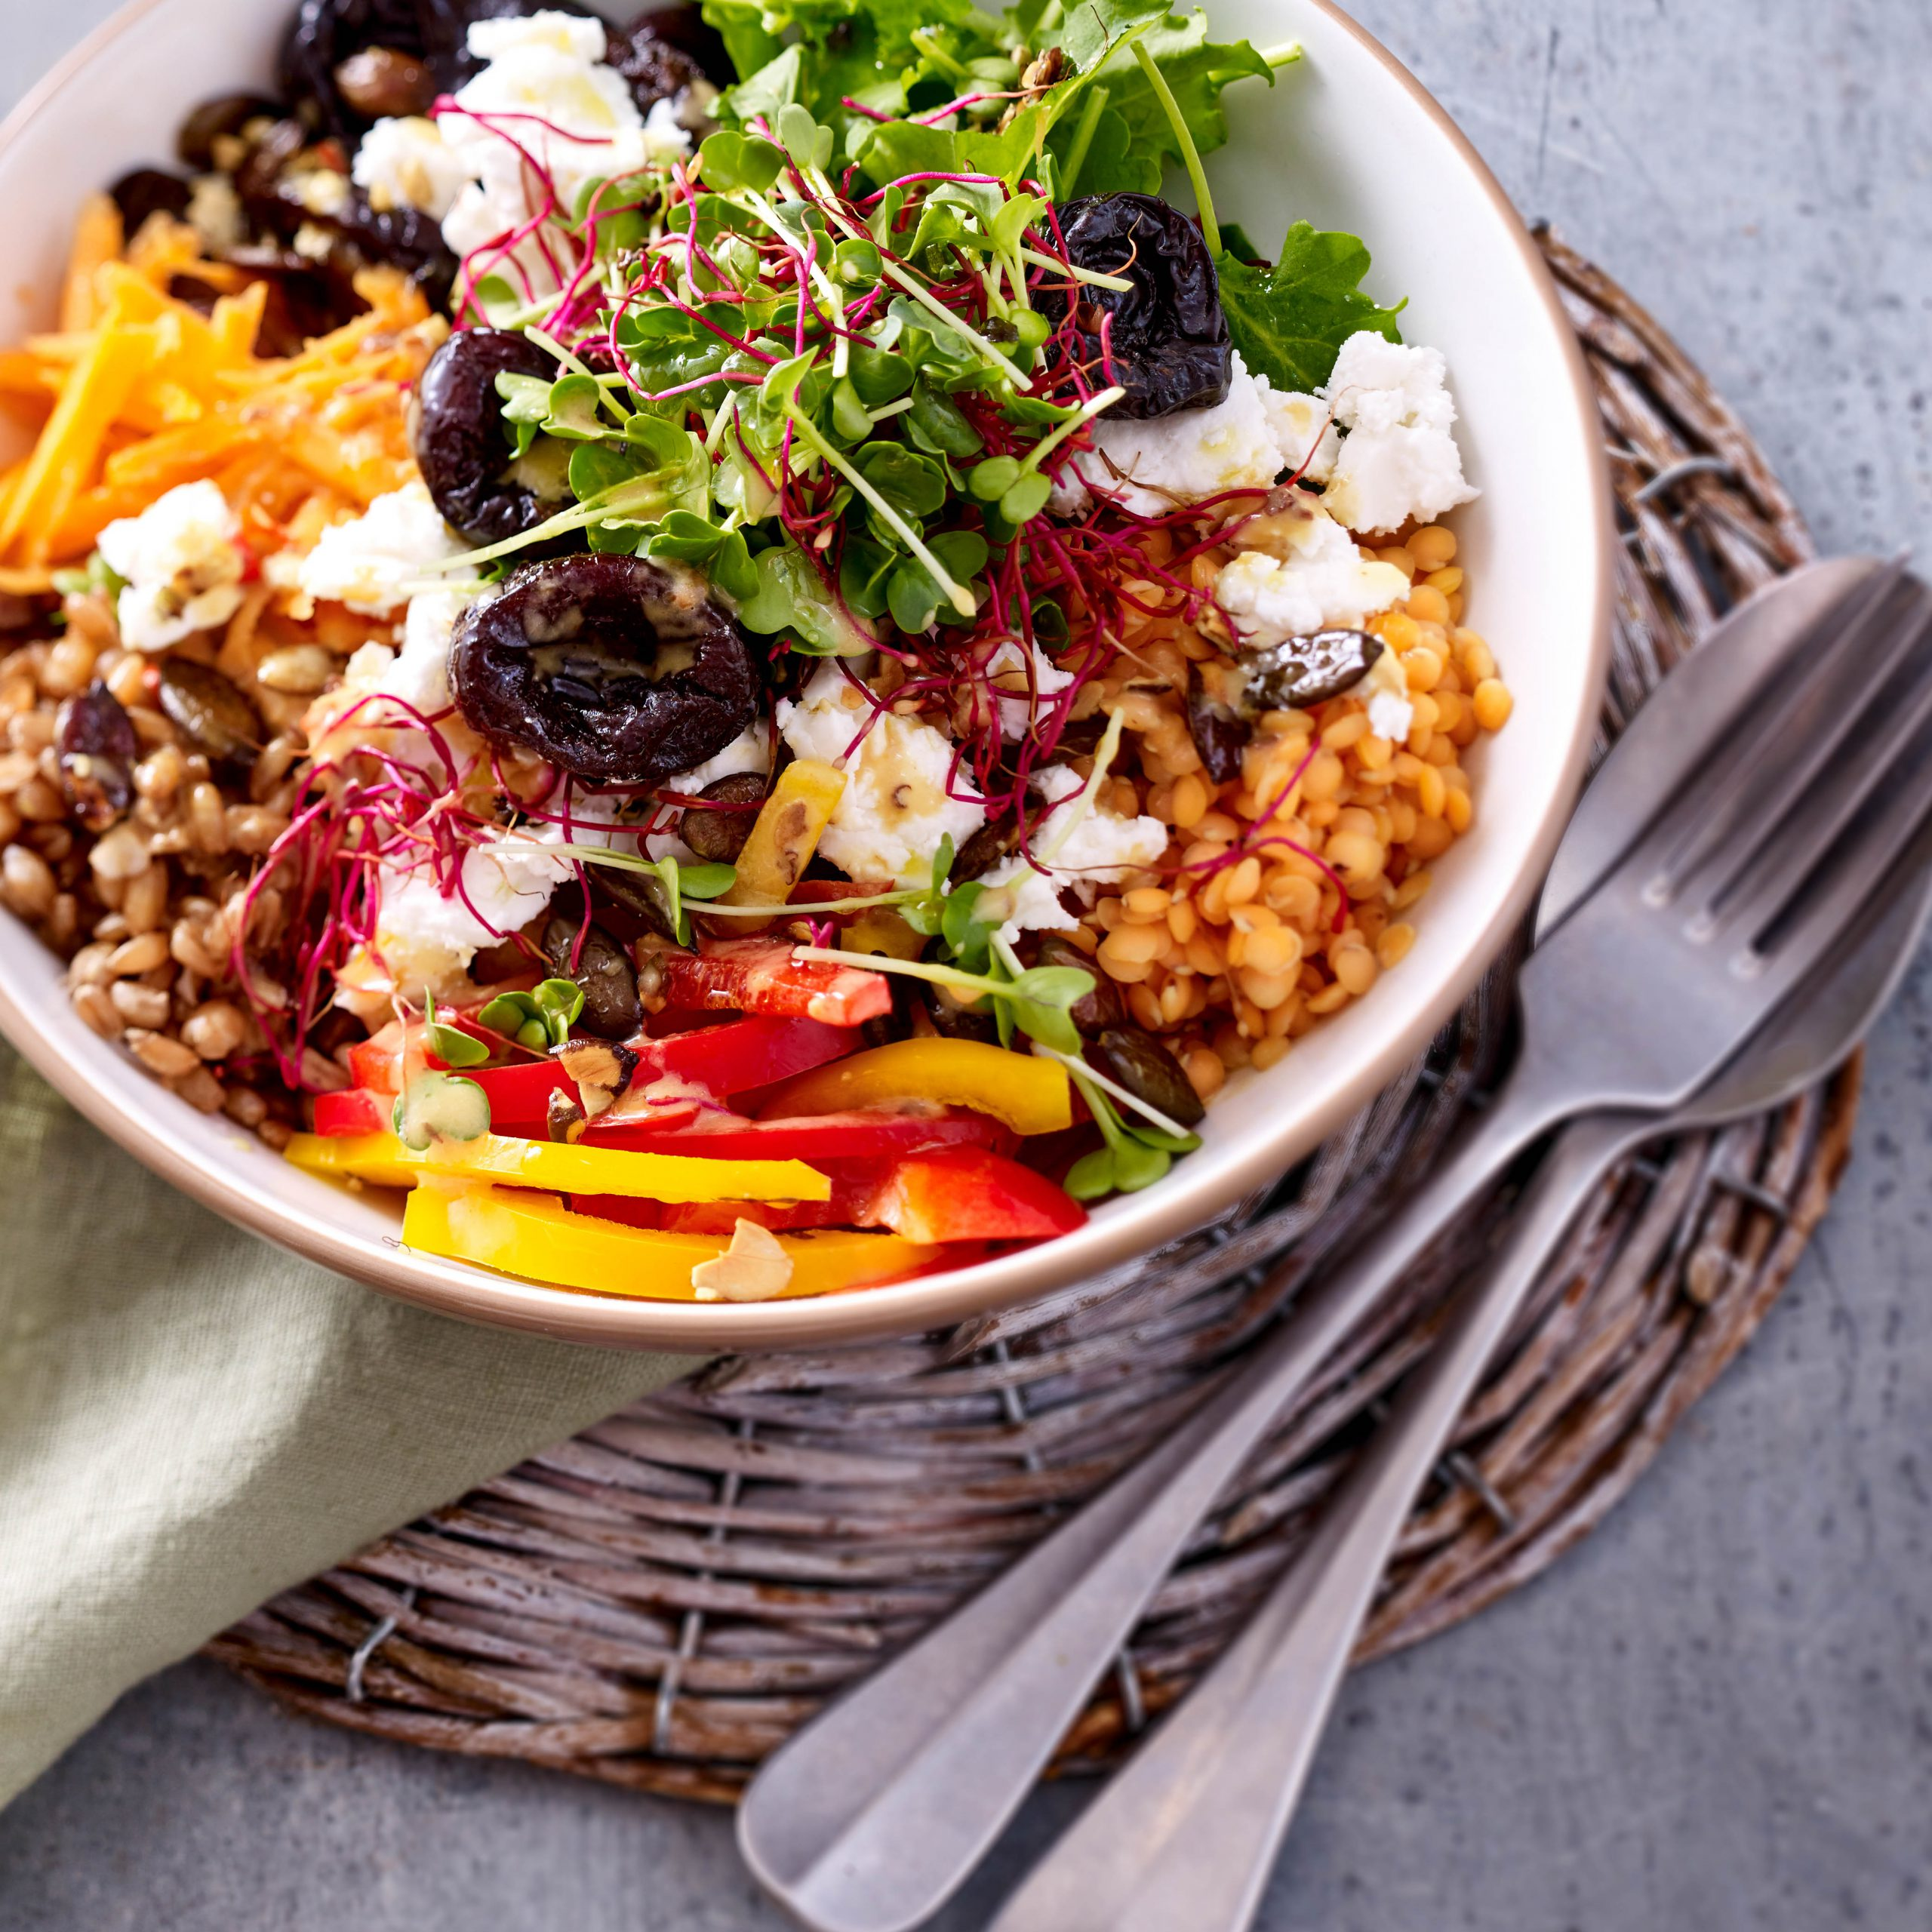 <p>Using prunes in salad dressing adds sweetness and tangy balsamic note without any added sugar in this healthy grain salad.</p>